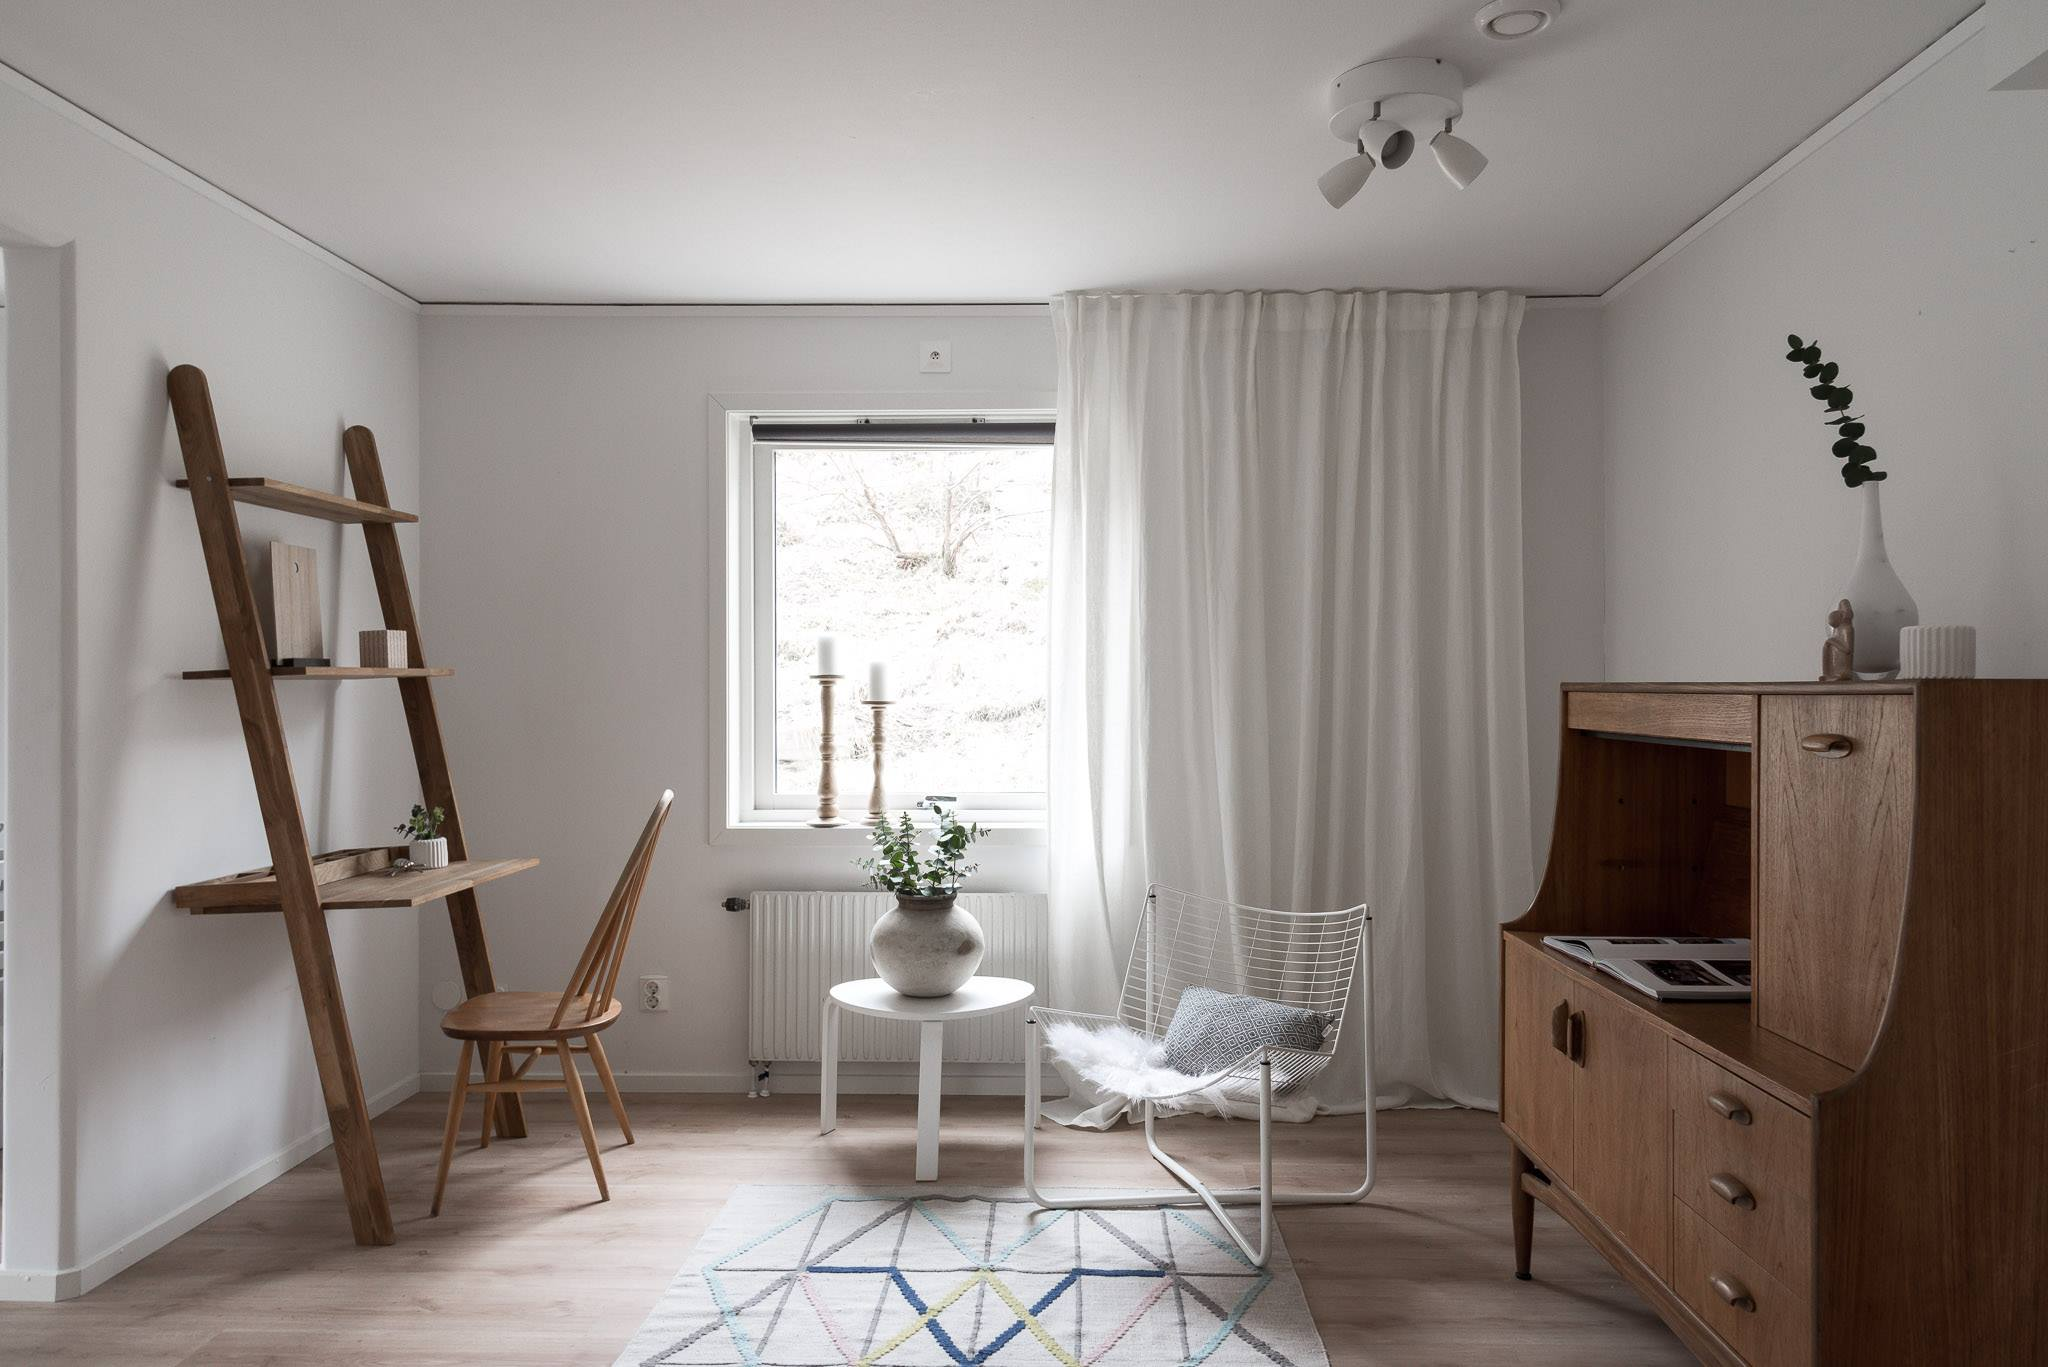 homestyling göteborg studio in